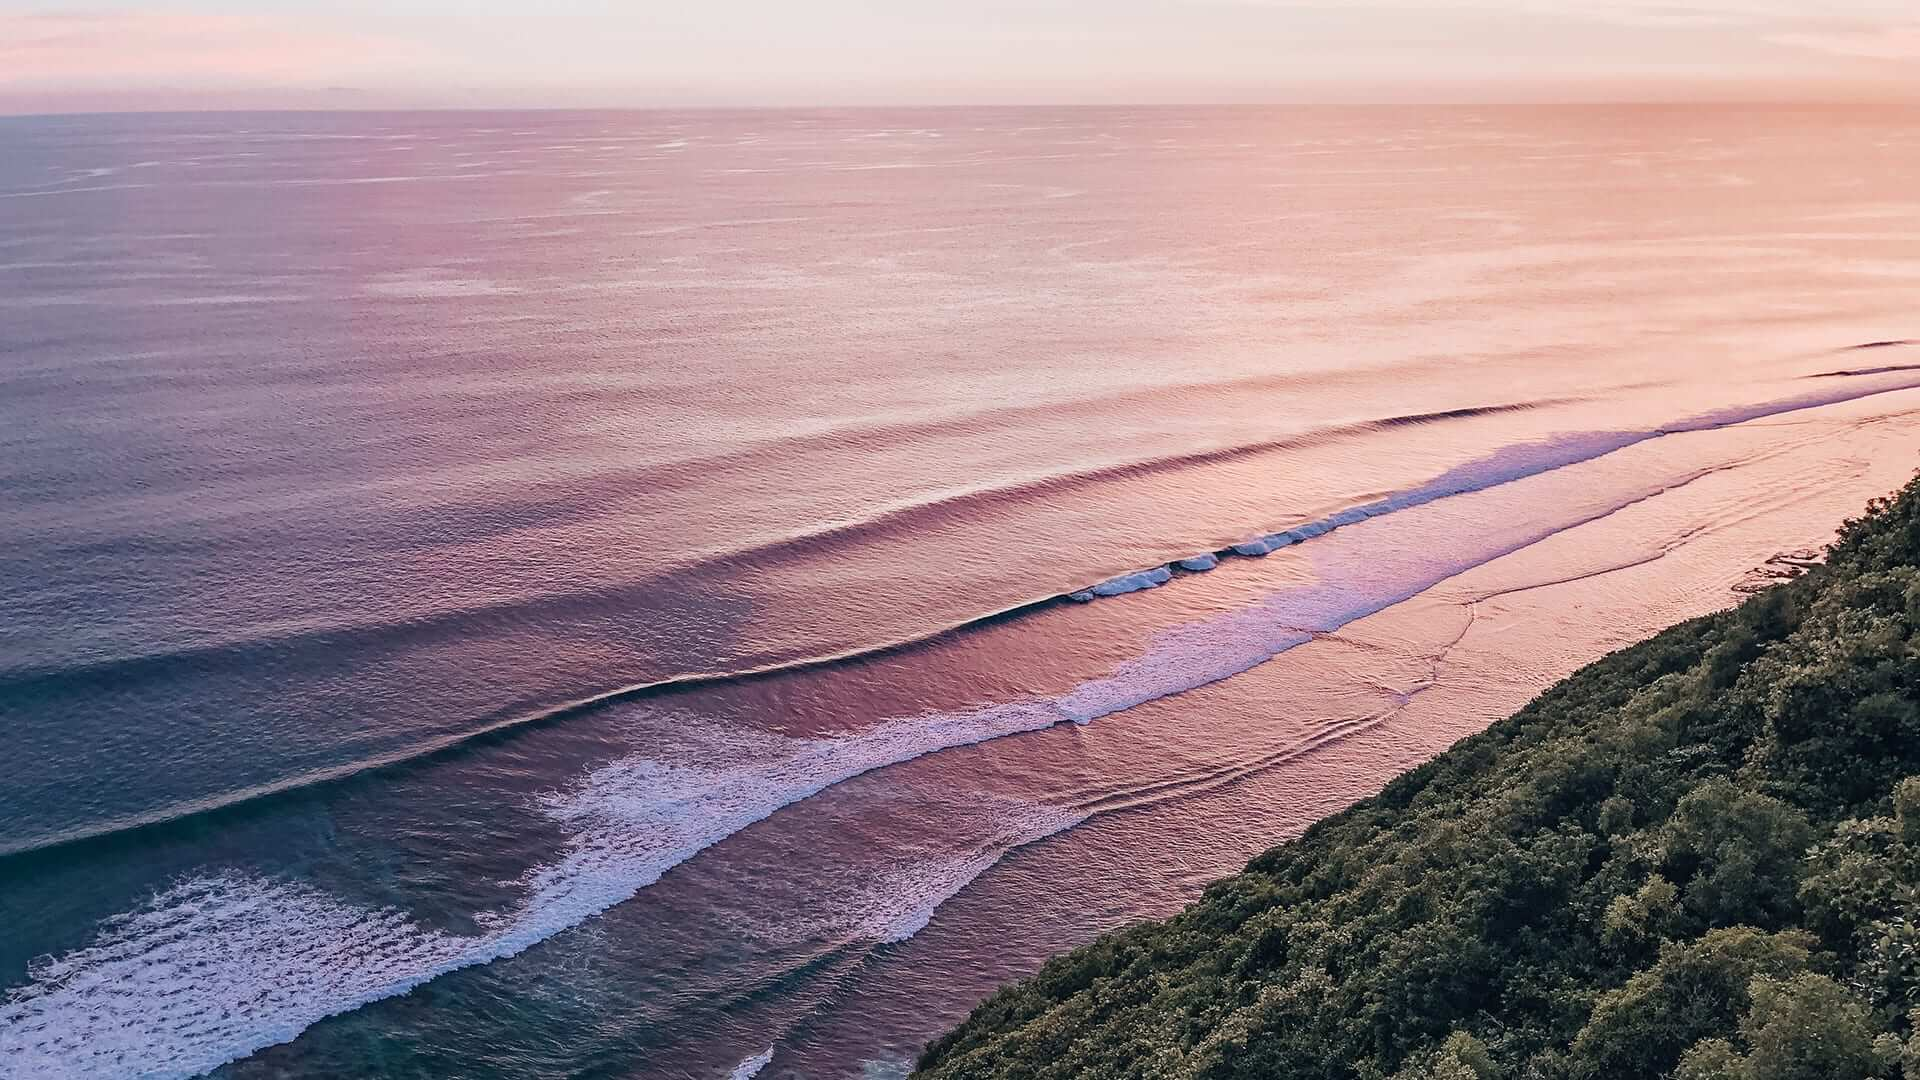 Waves breaking against the shore at sunset, trees and mountains in front